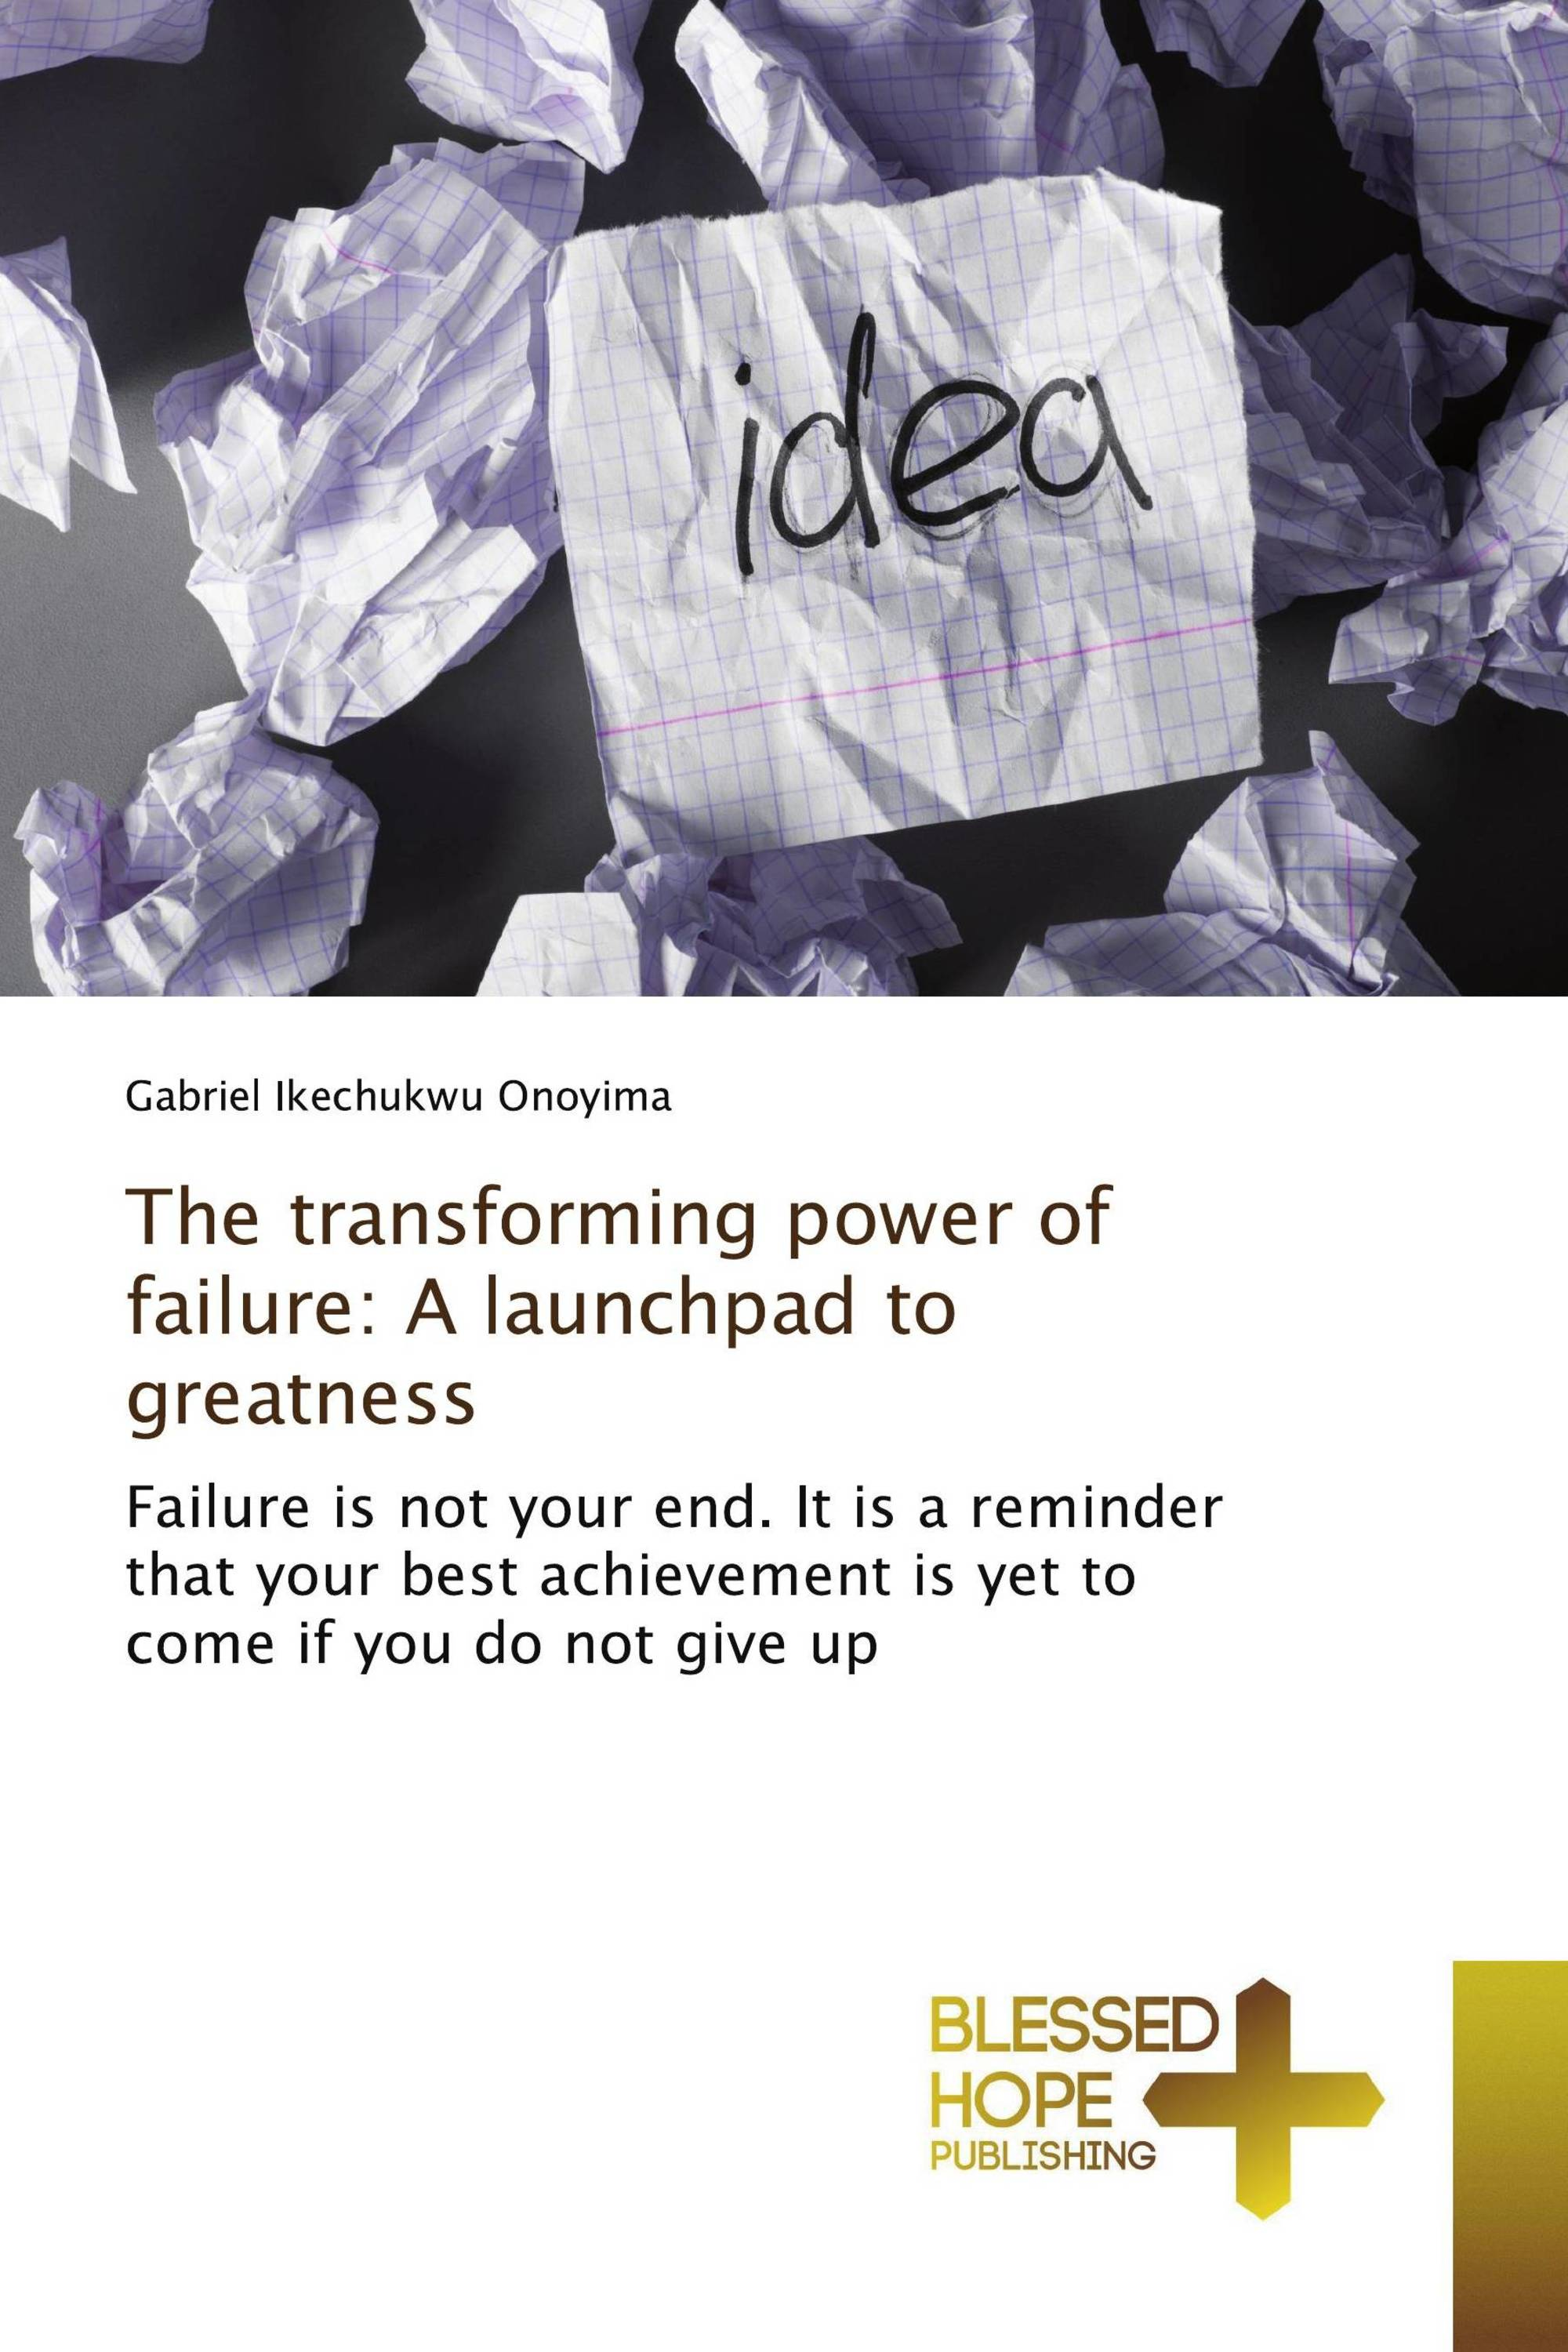 The transforming power of failure: A launchpad to greatness